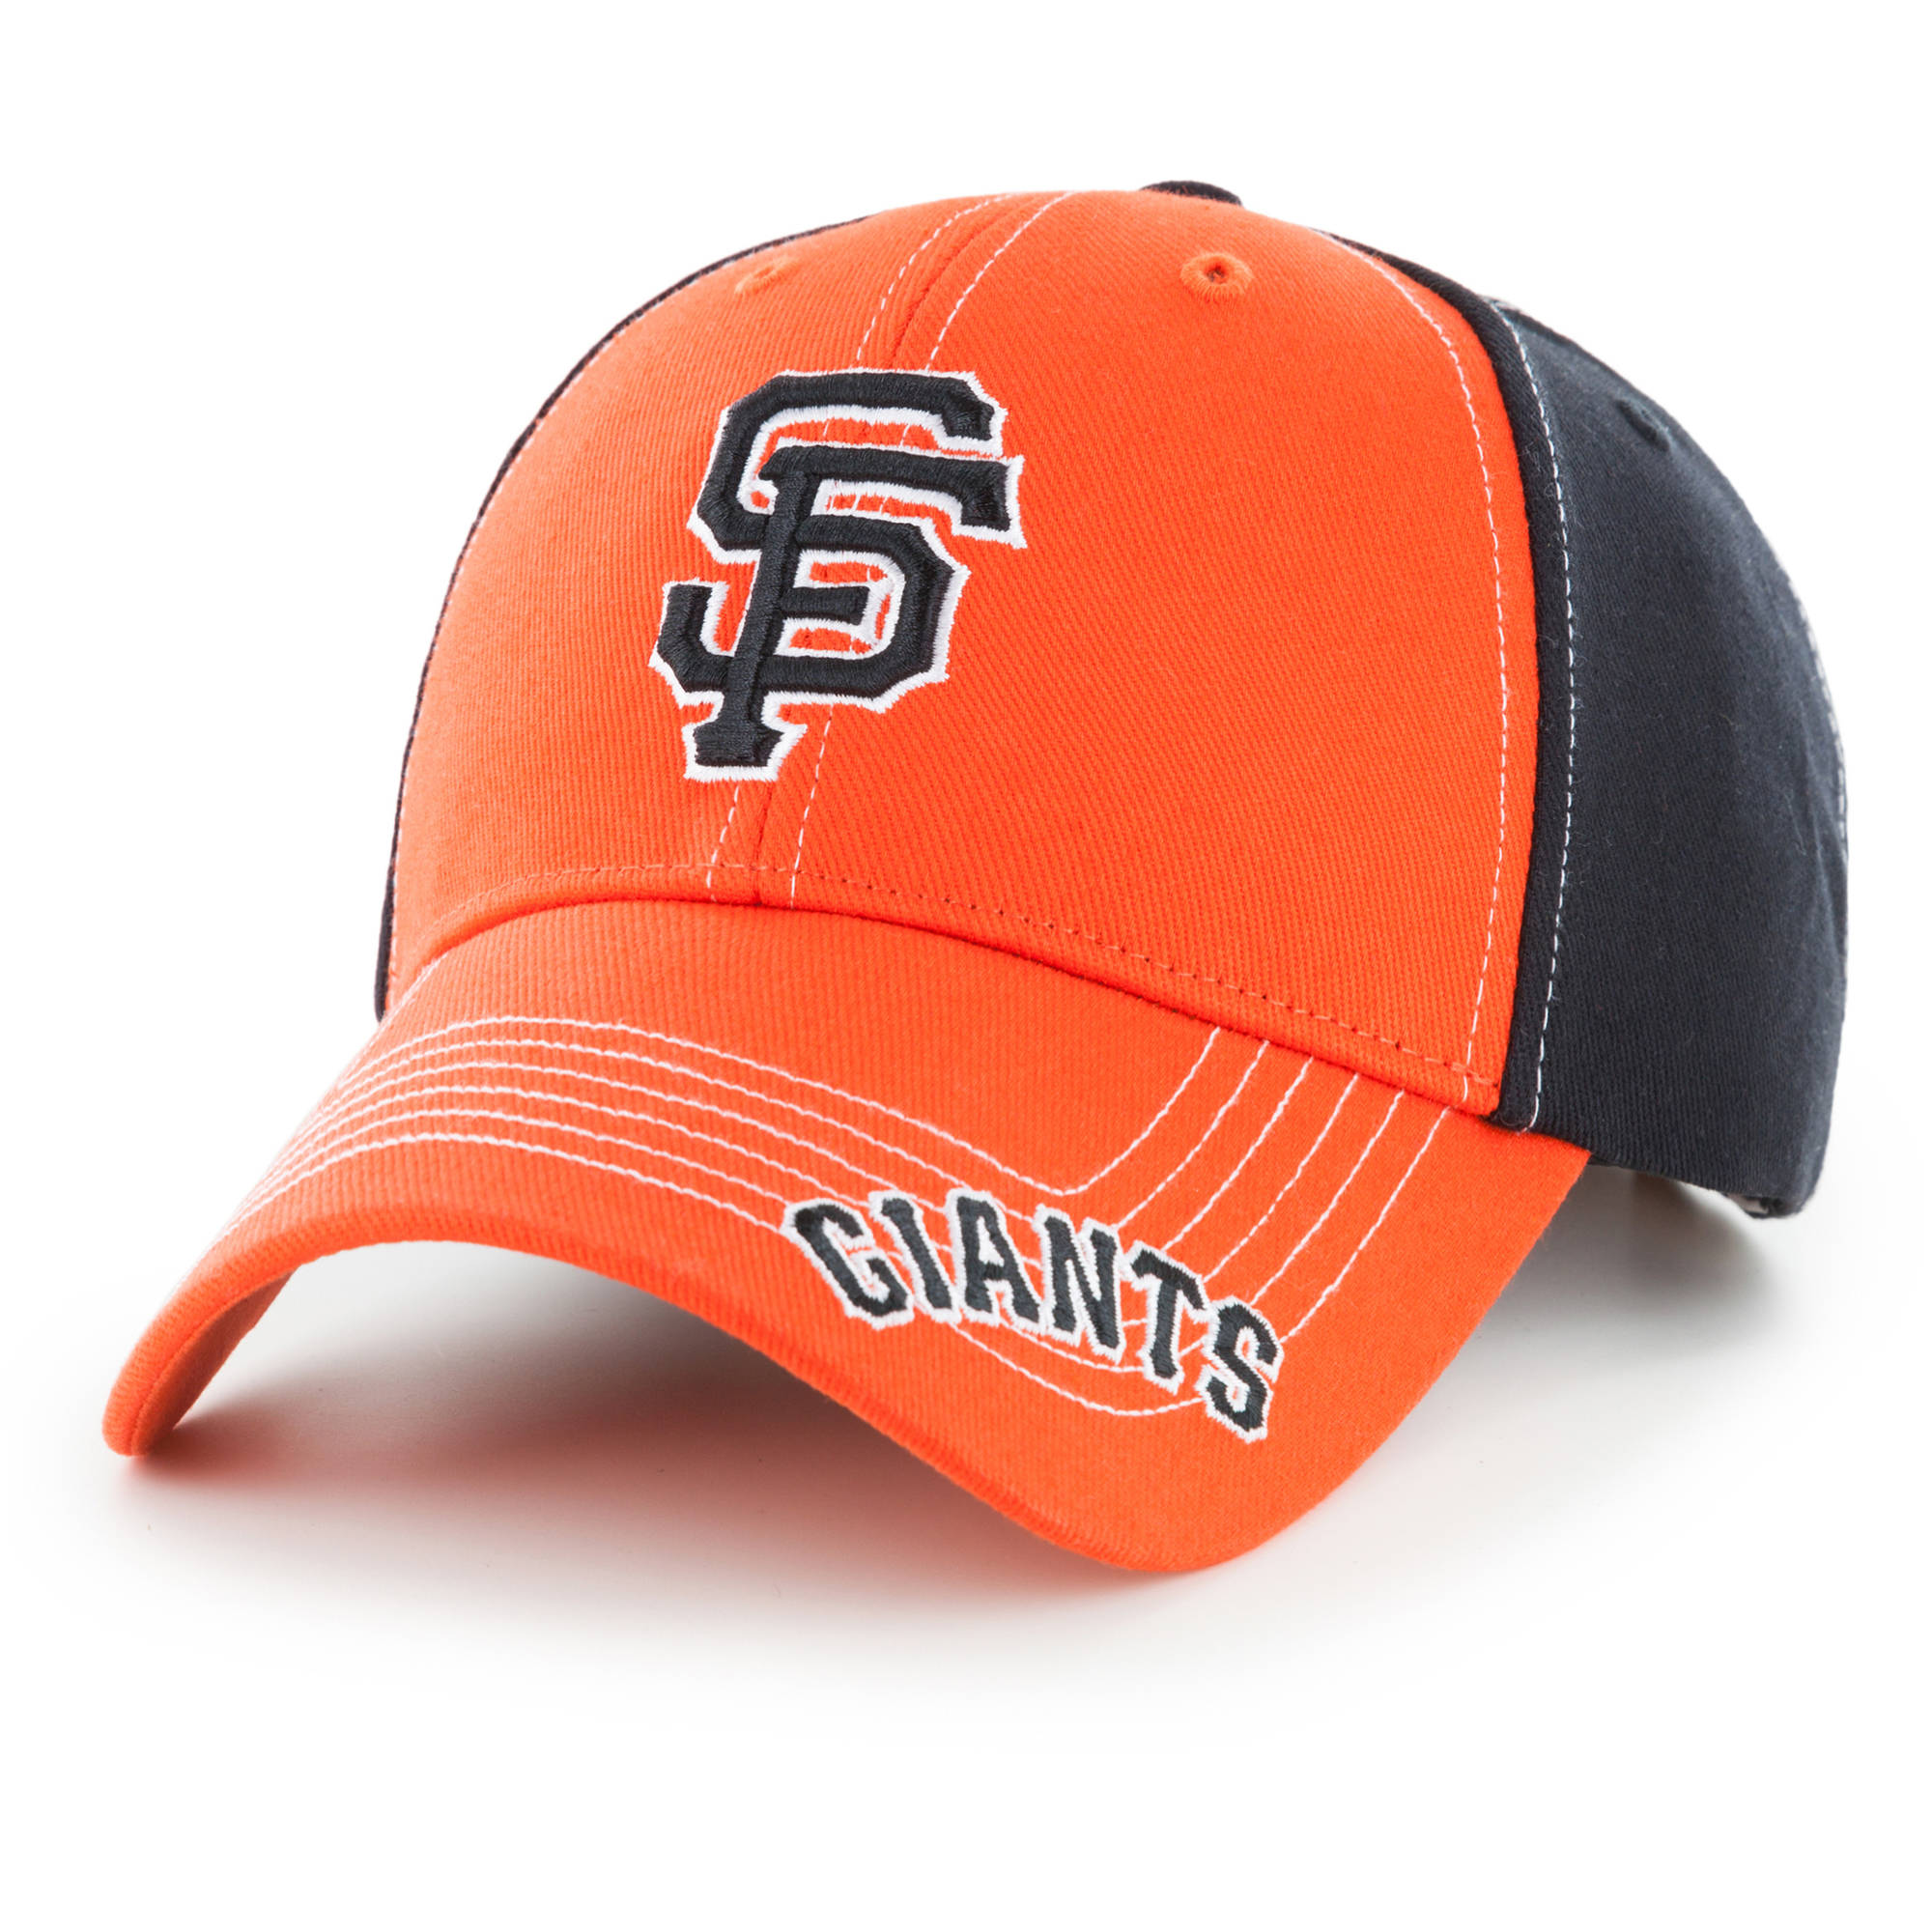 MLB San Francisco Giants Revolver Cap / Hat by Fan Favorite